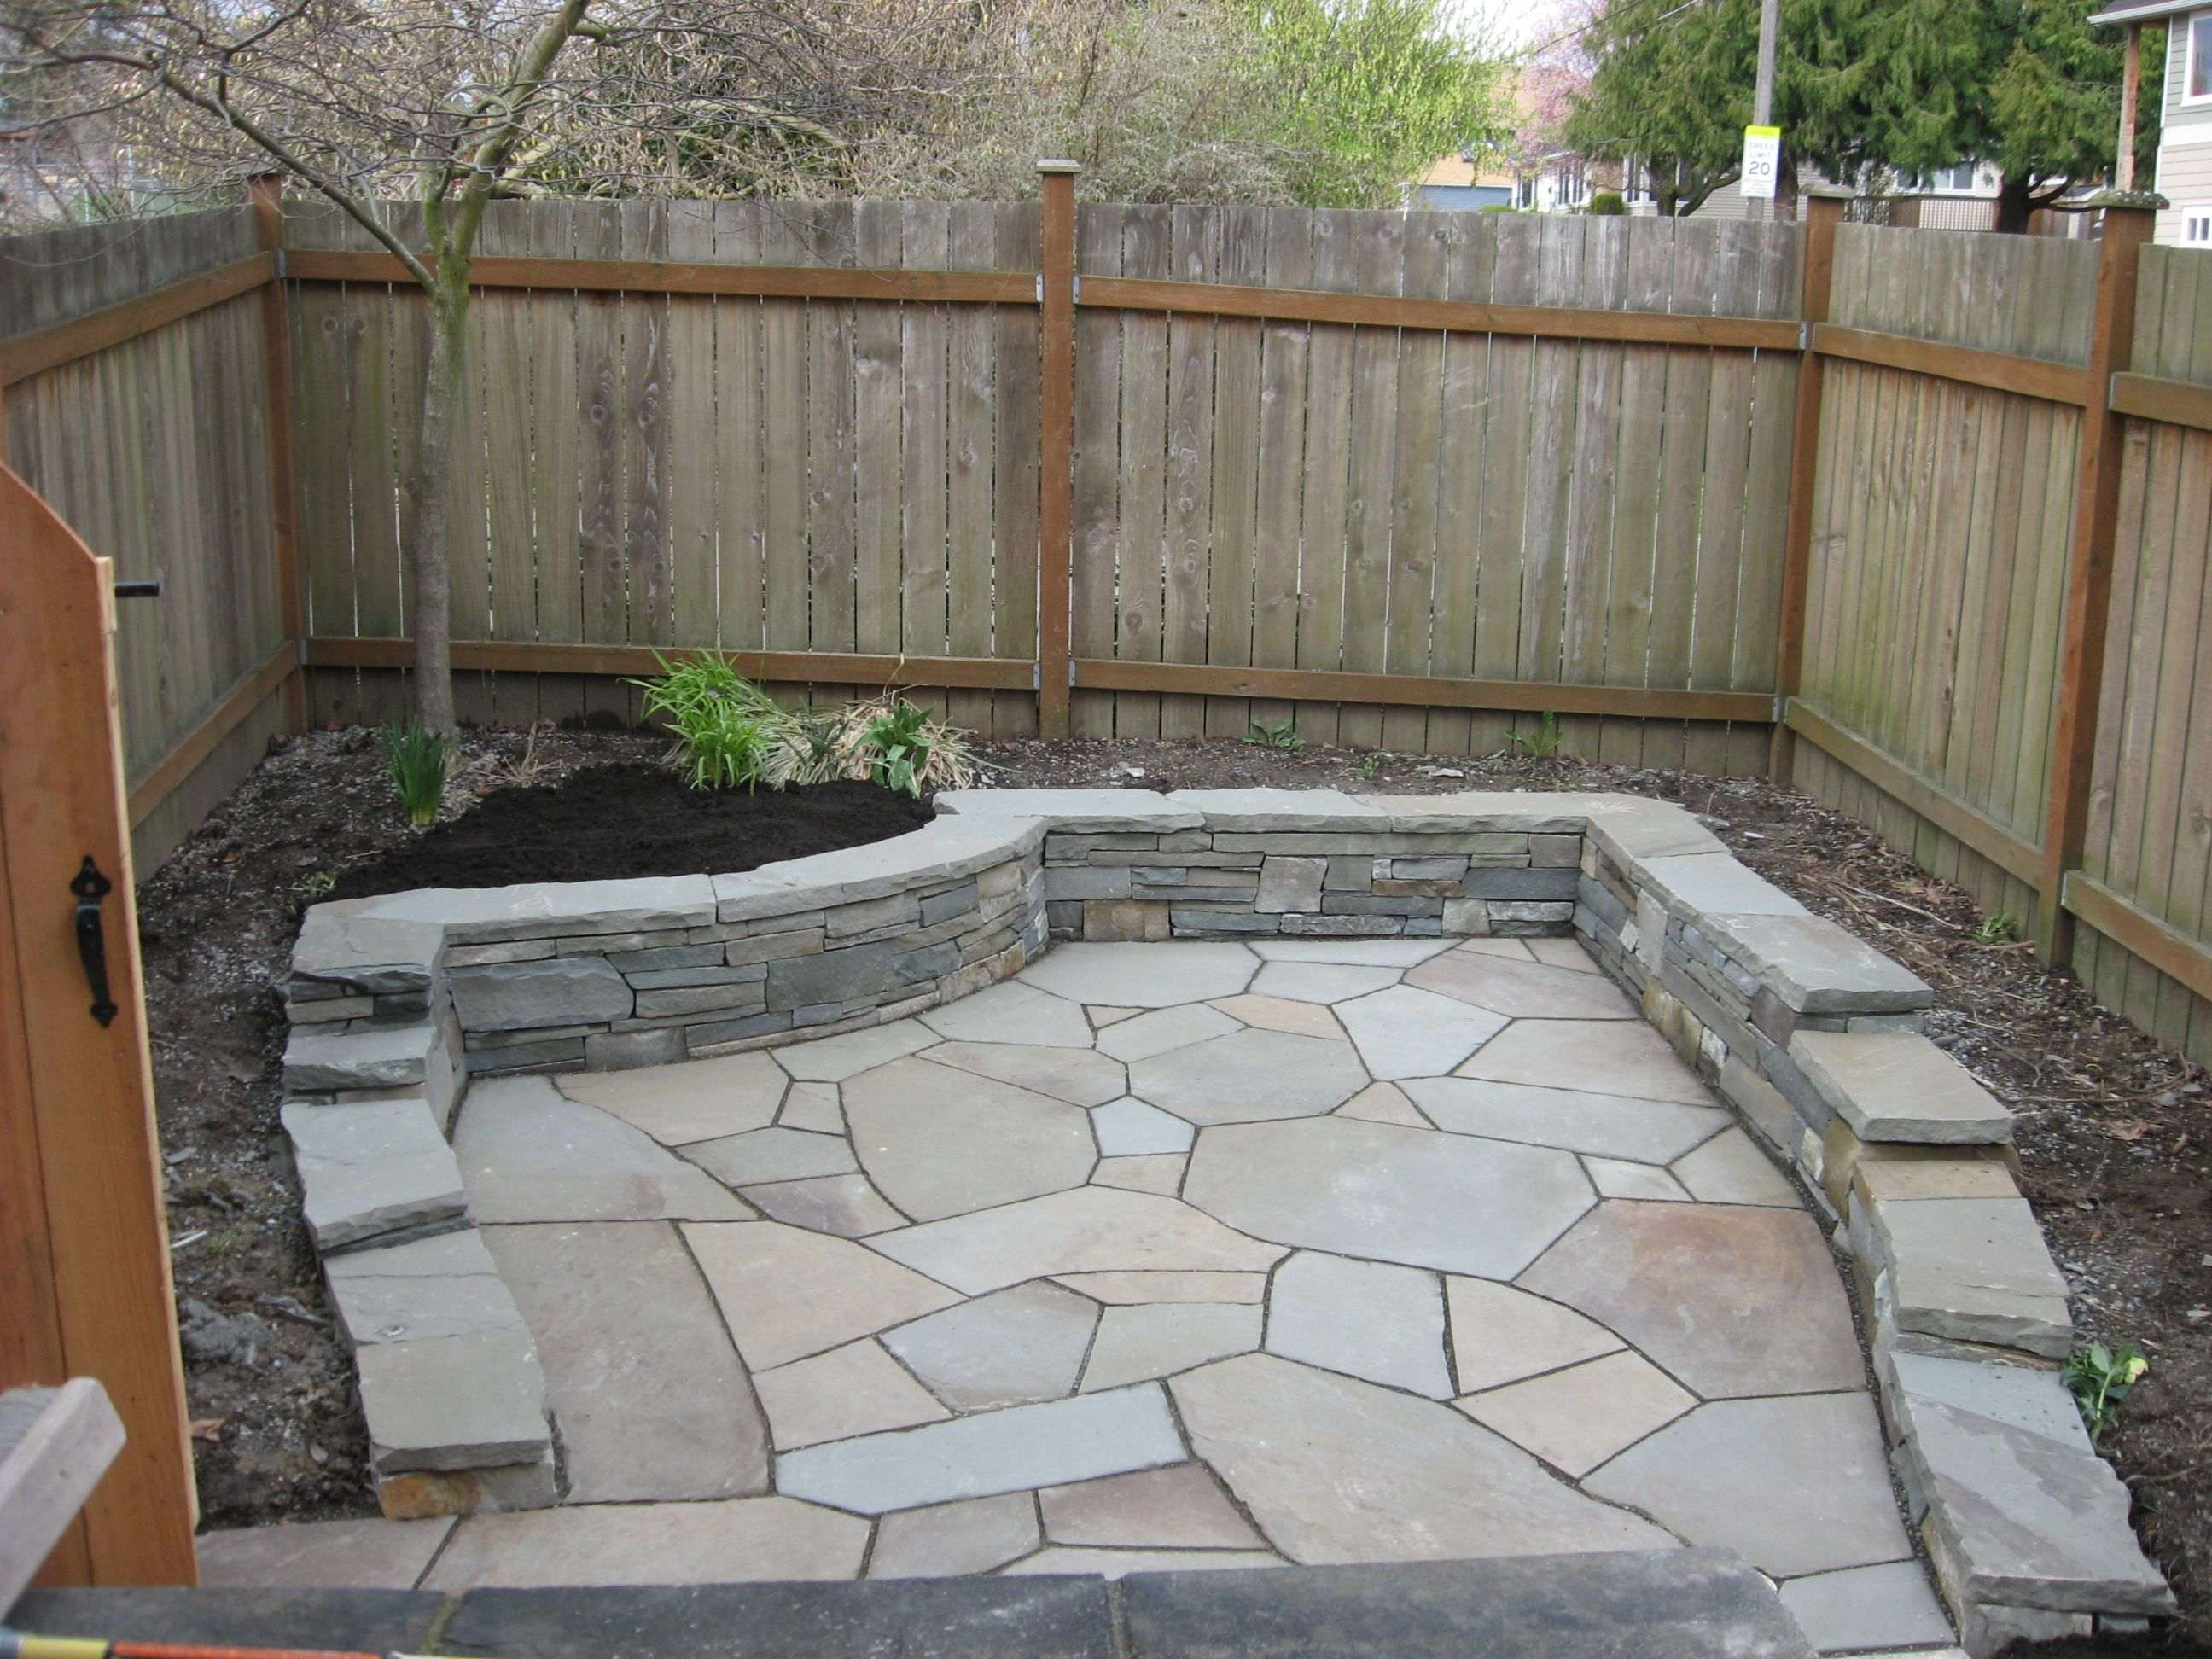 Flagstone Patio With Retaining Wall Yard Pinterest Flagstone - Flagstone patio patterns